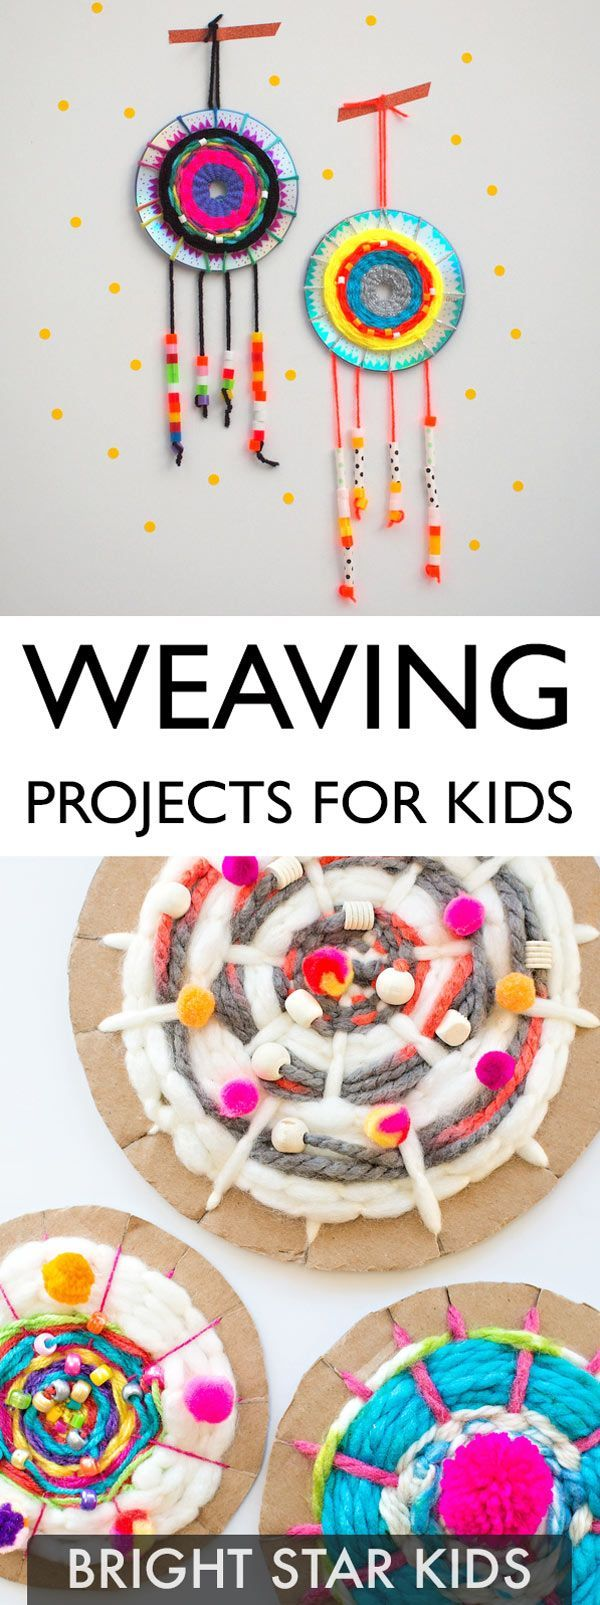 For more child-friendly ideas and DIY's go to www.blog.brightst... #weavingfun #craftforkids #weavingprojects